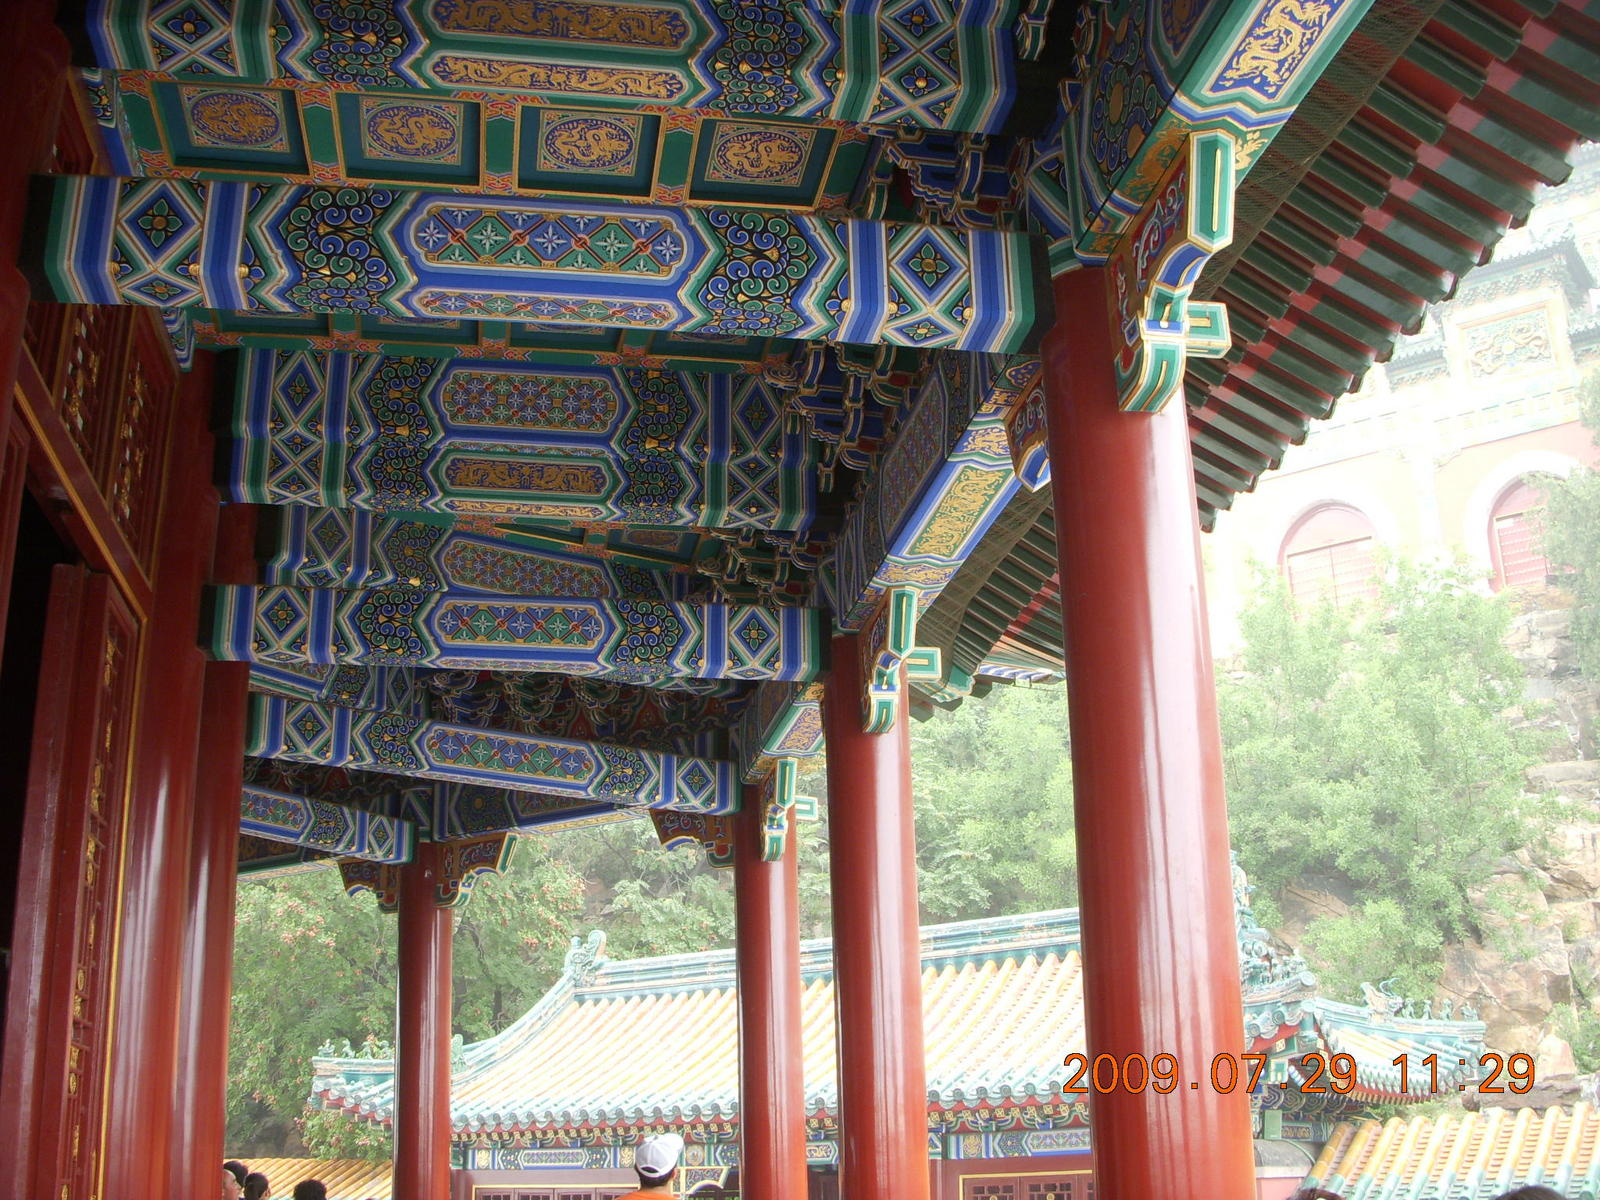 China eclipse - Beijing - Summer Palace